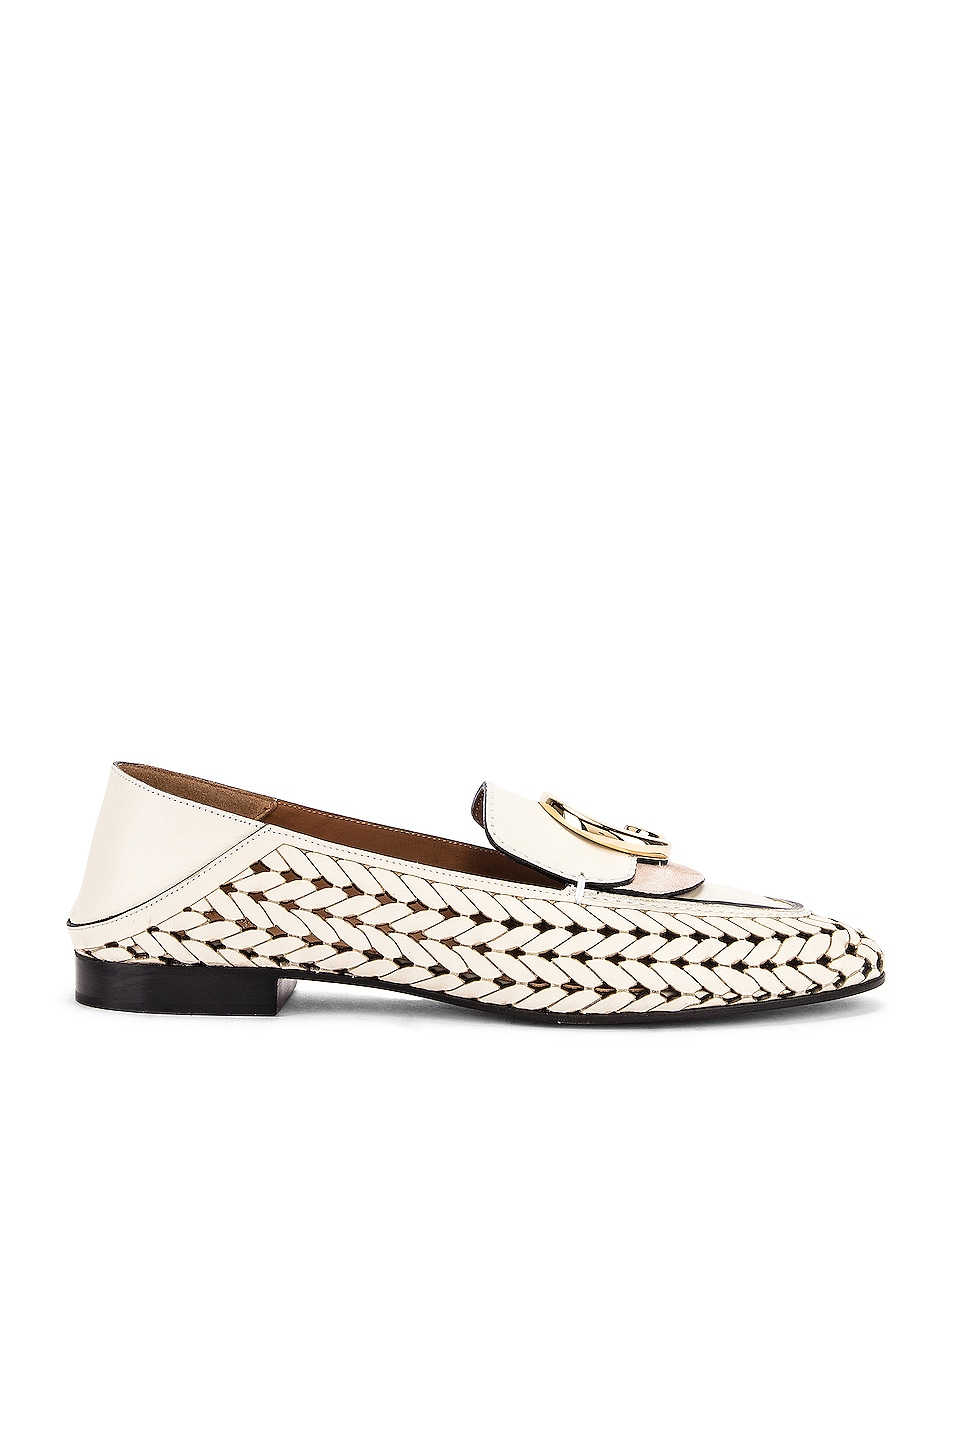 Image 3 of Chloe C Lasered Leather Loafers in White